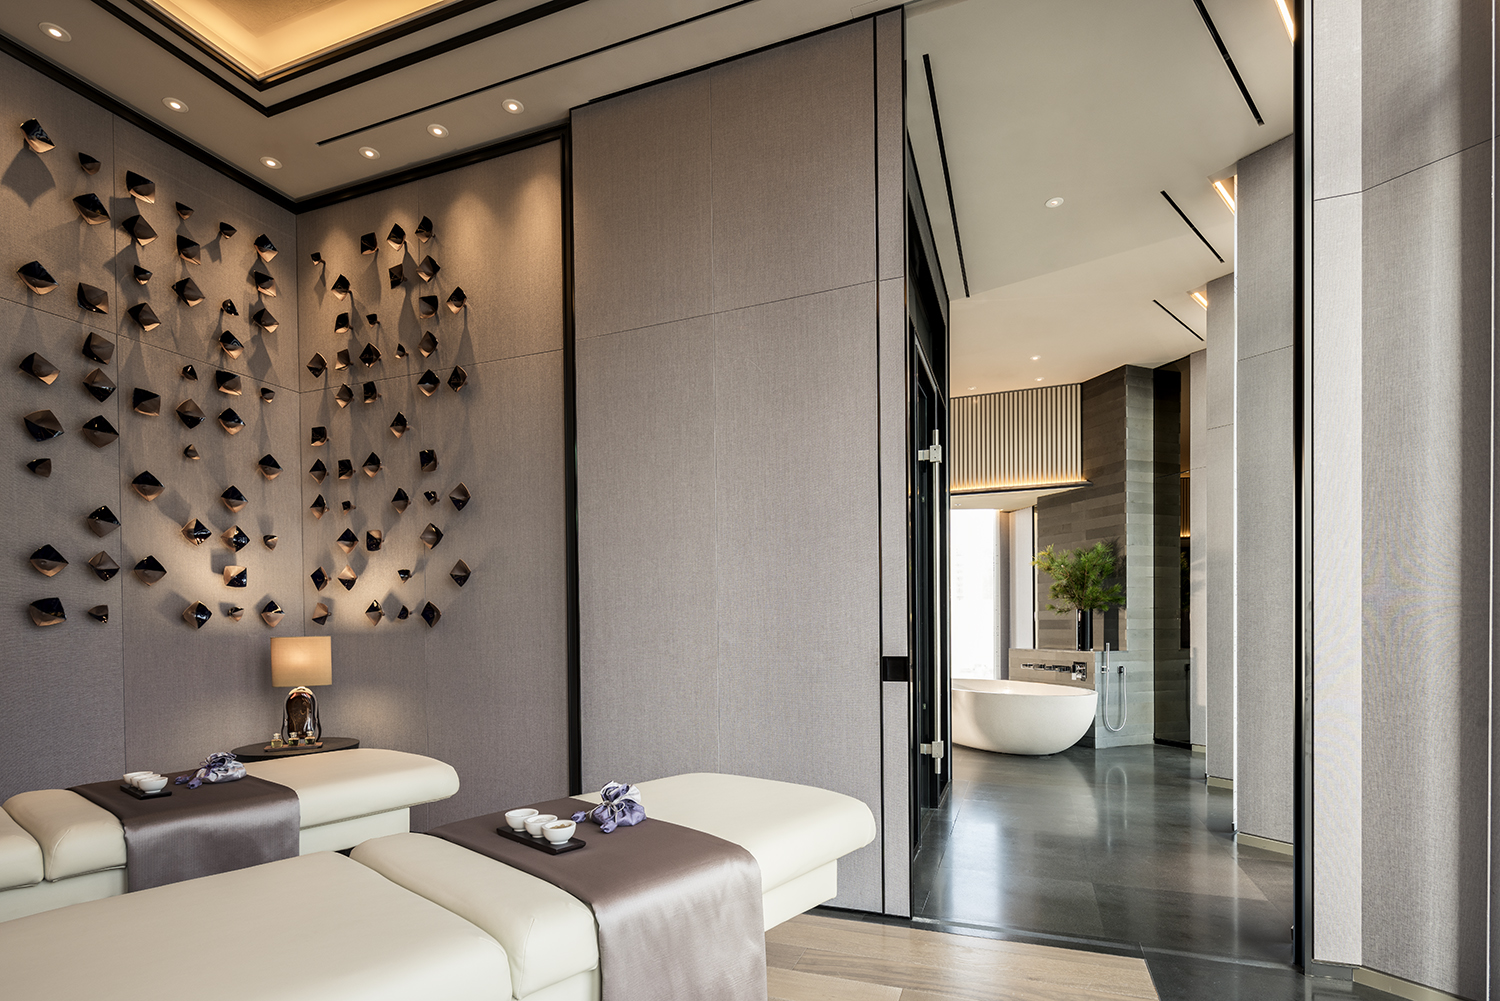 The couples' spa suite includes a large bathtub, steam room, dressing room, powder room and spacious relaxation area.